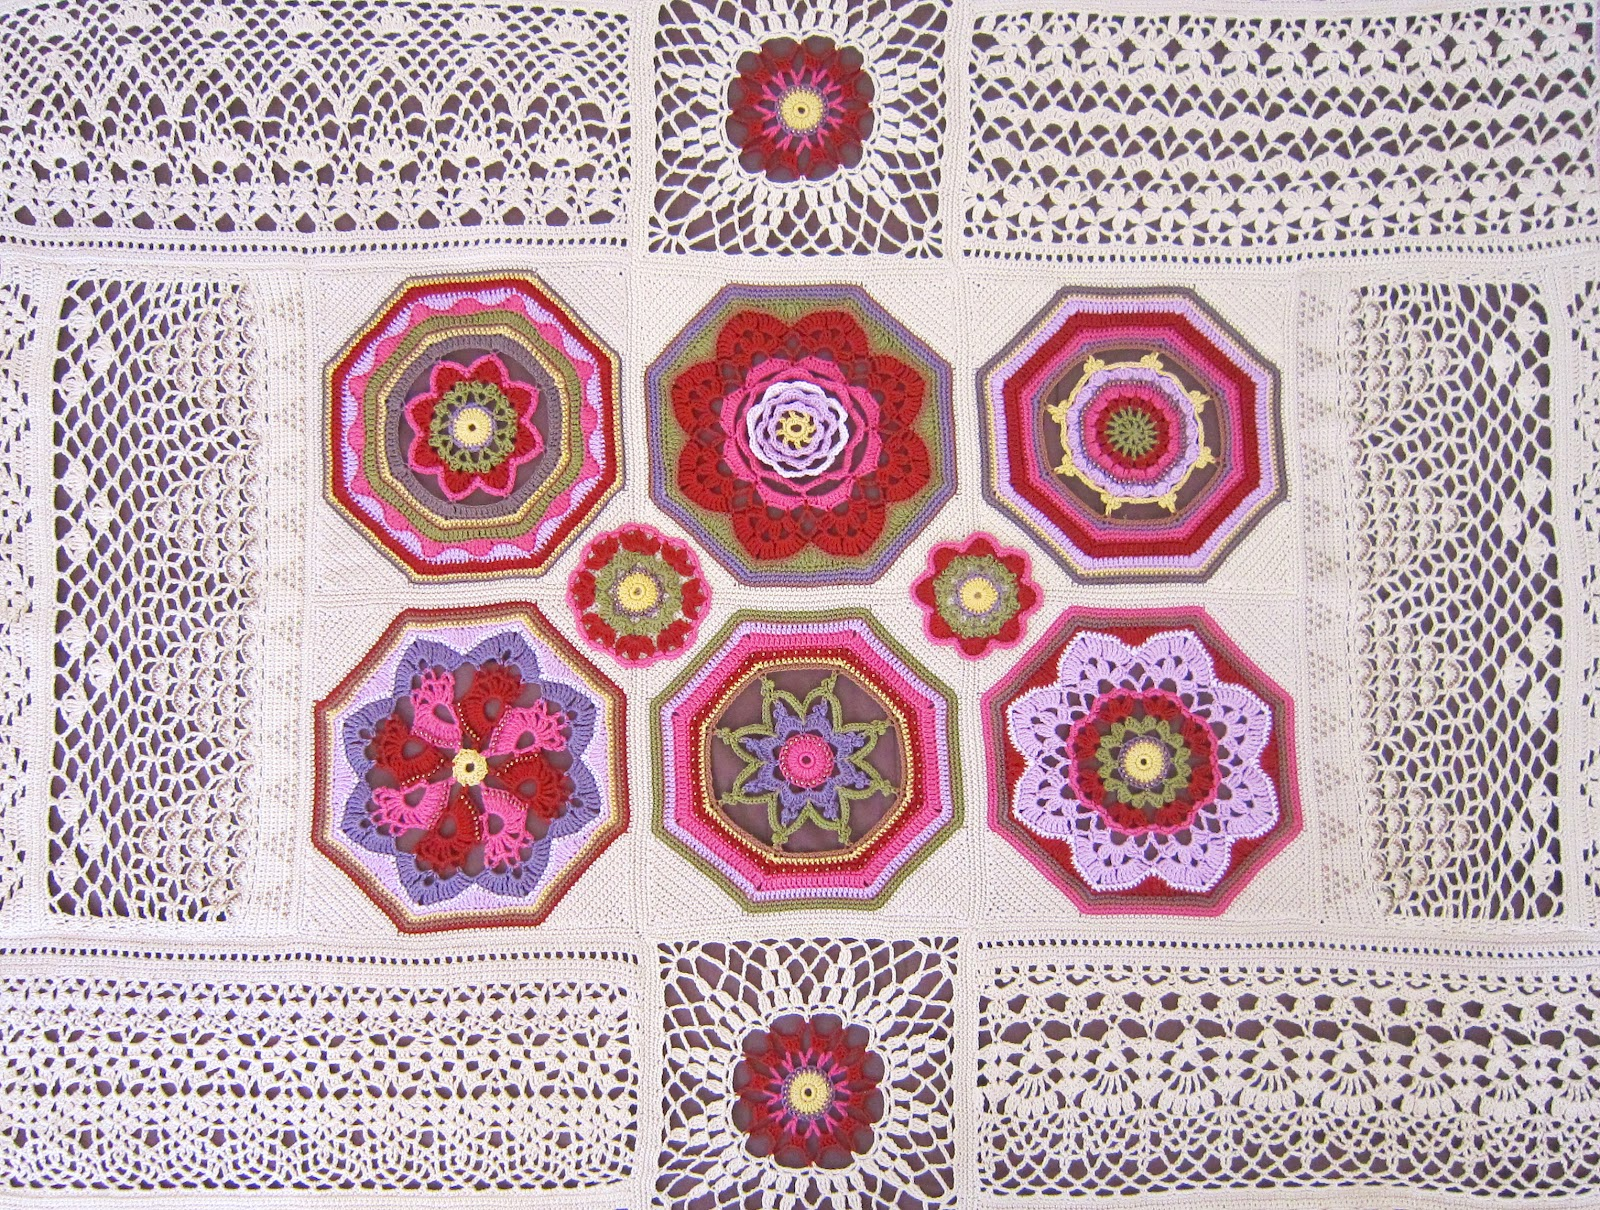 knit & crochet design: Crochet Club 2012